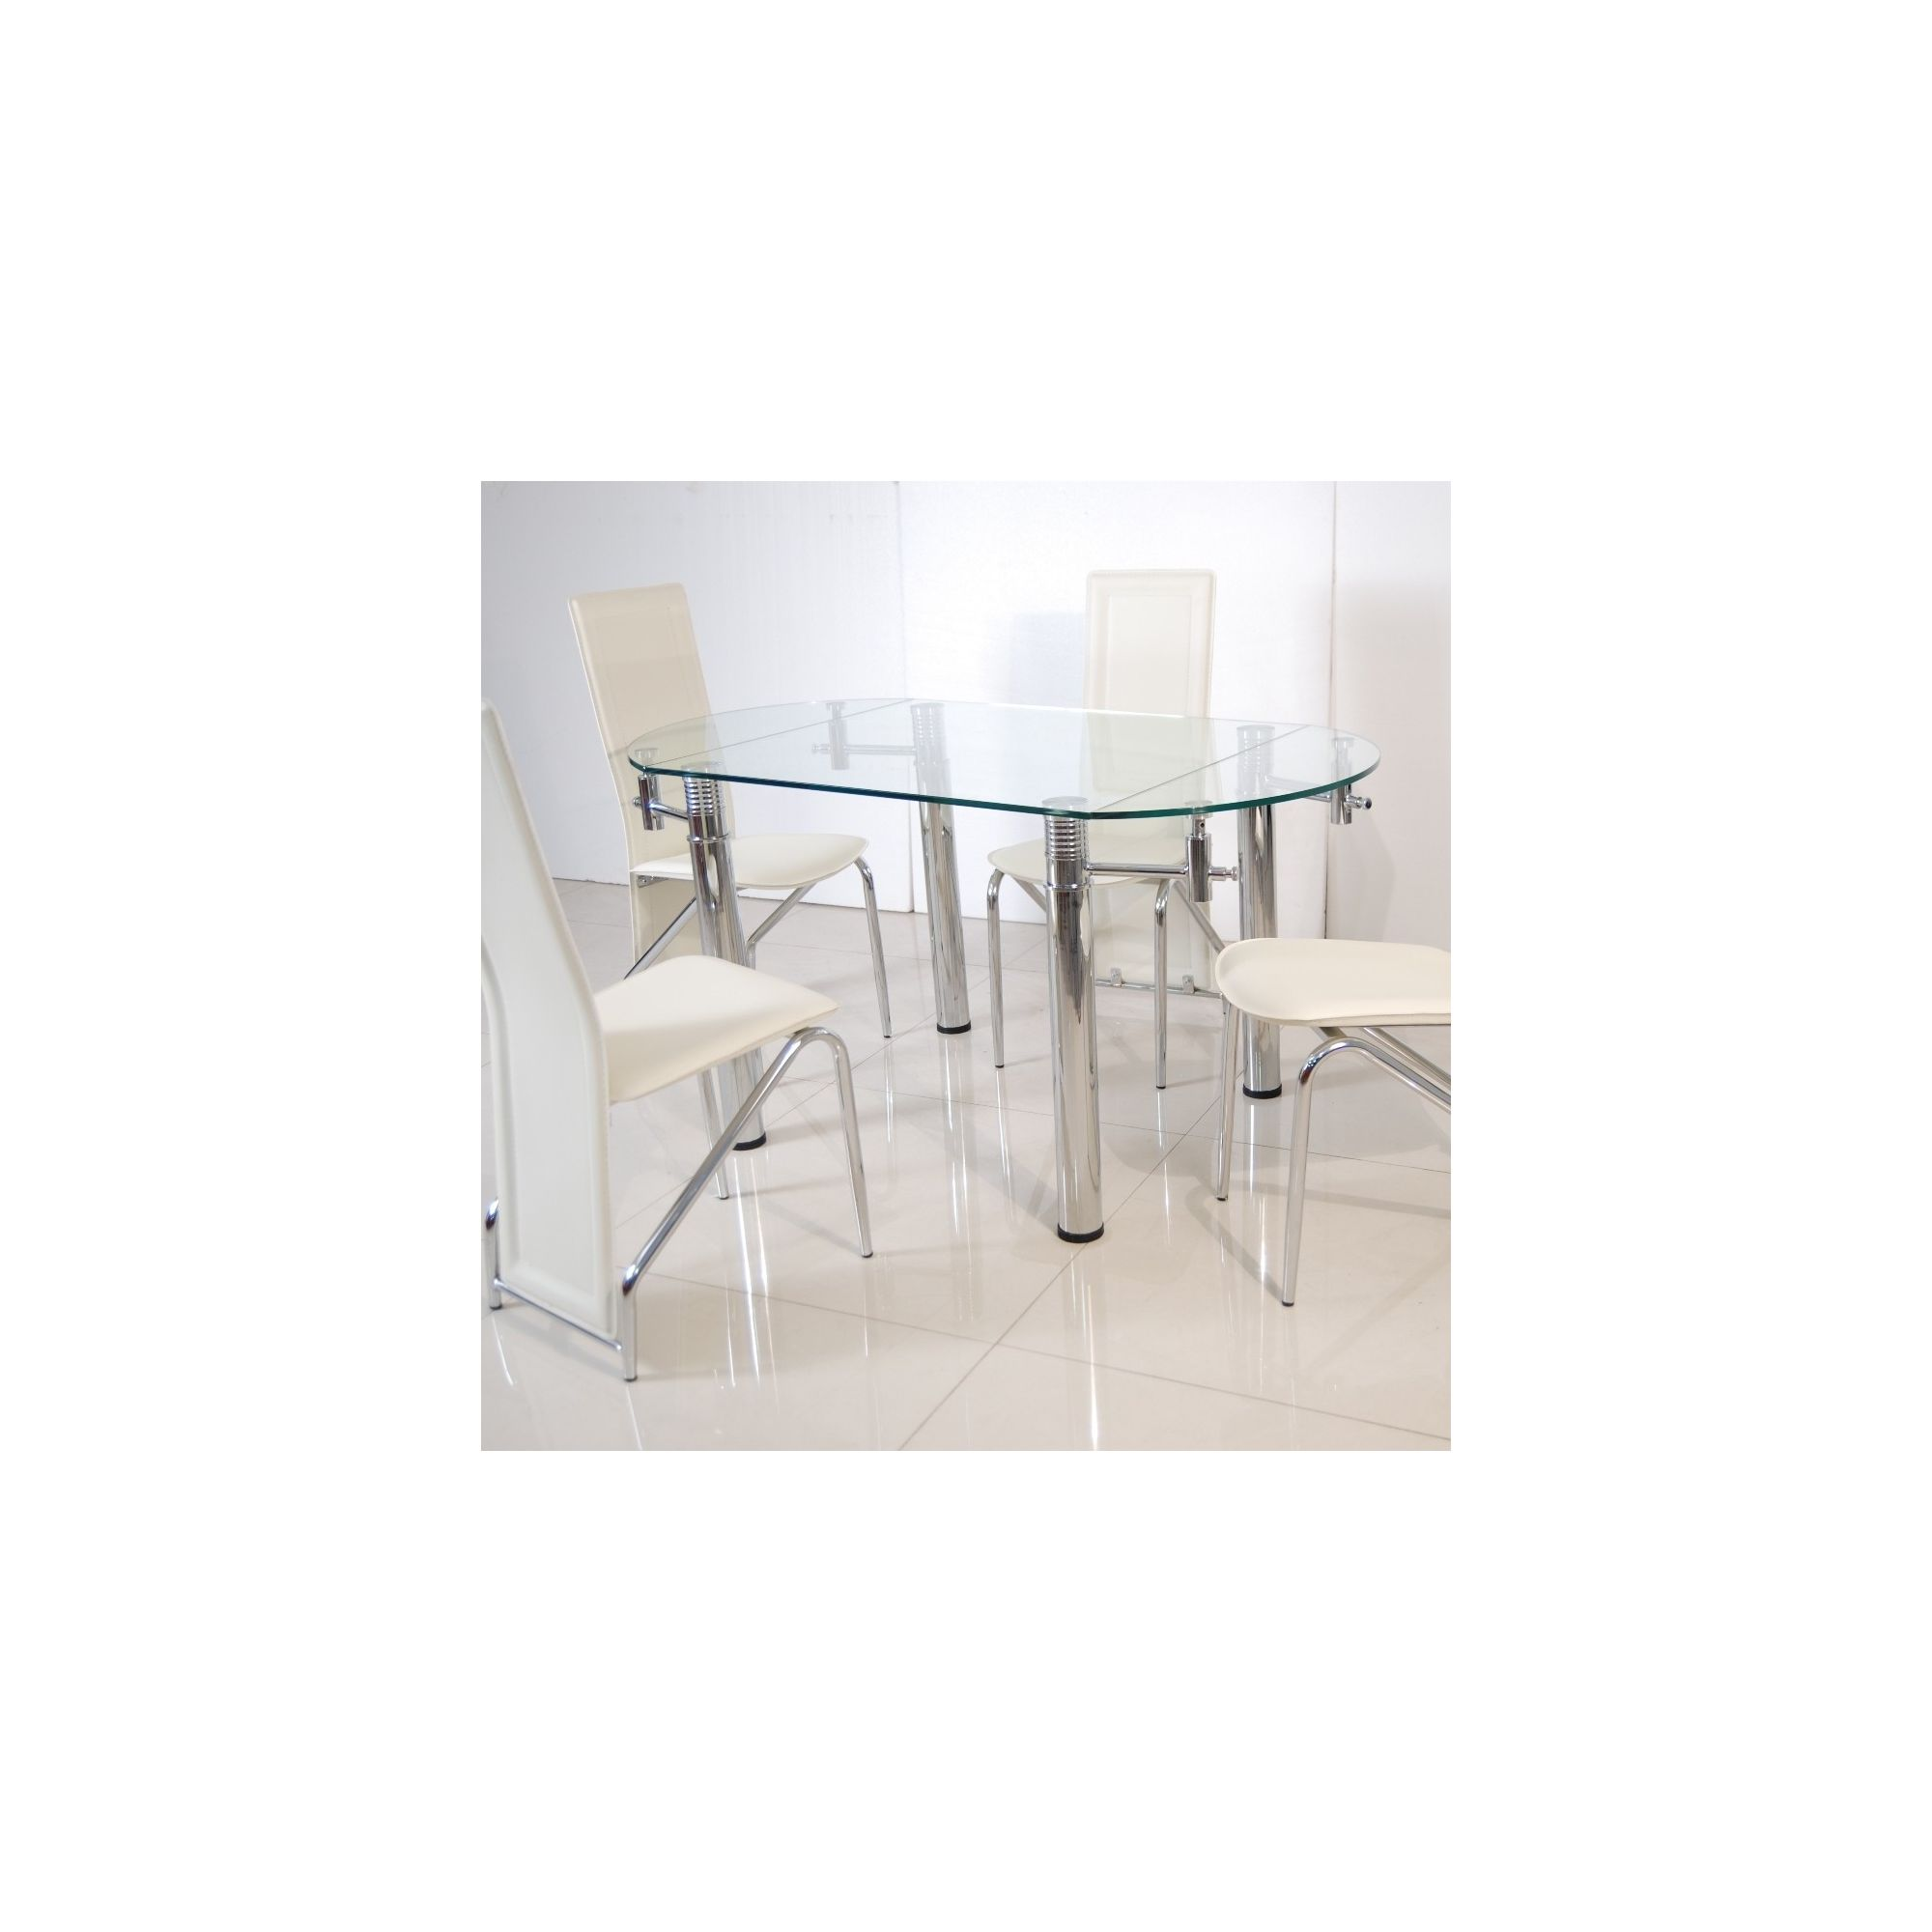 Solway Furniture Oscar Oval 5 Piece Extending Dining Table Set - Cream at Tescos Direct